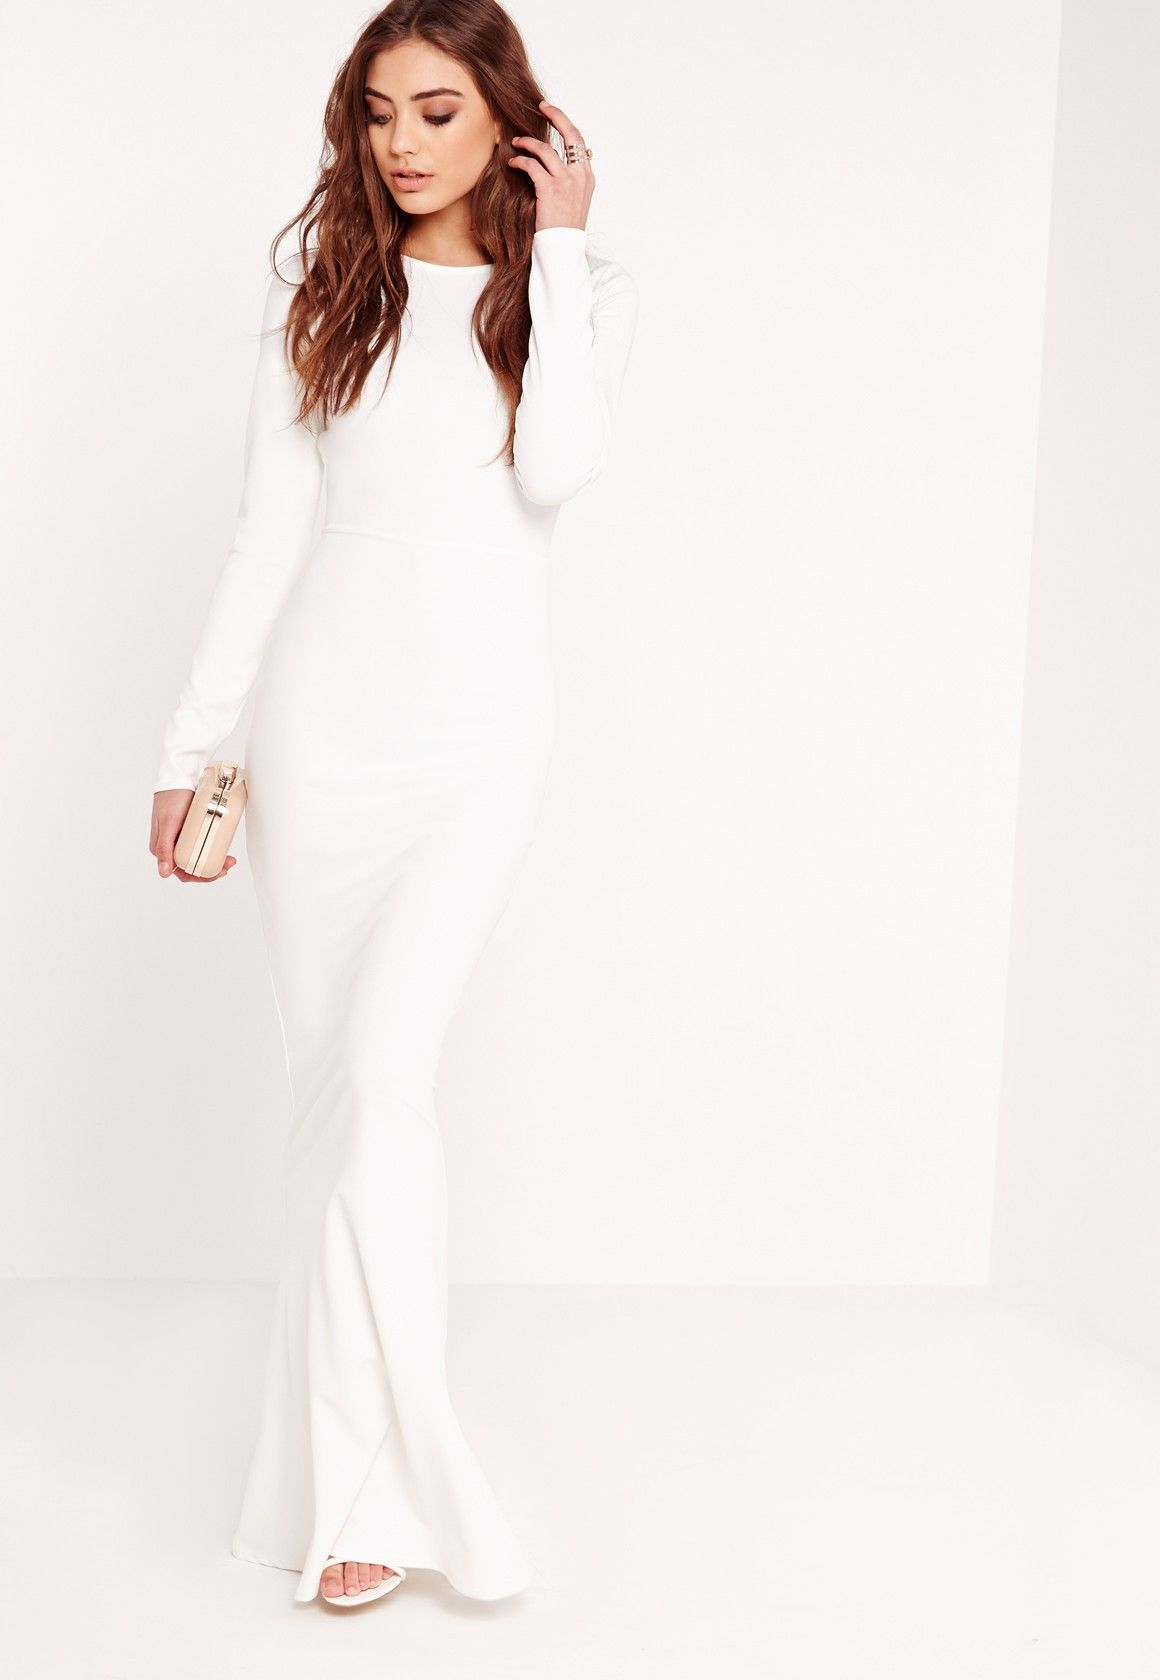 Long sleeve white maxi dress images